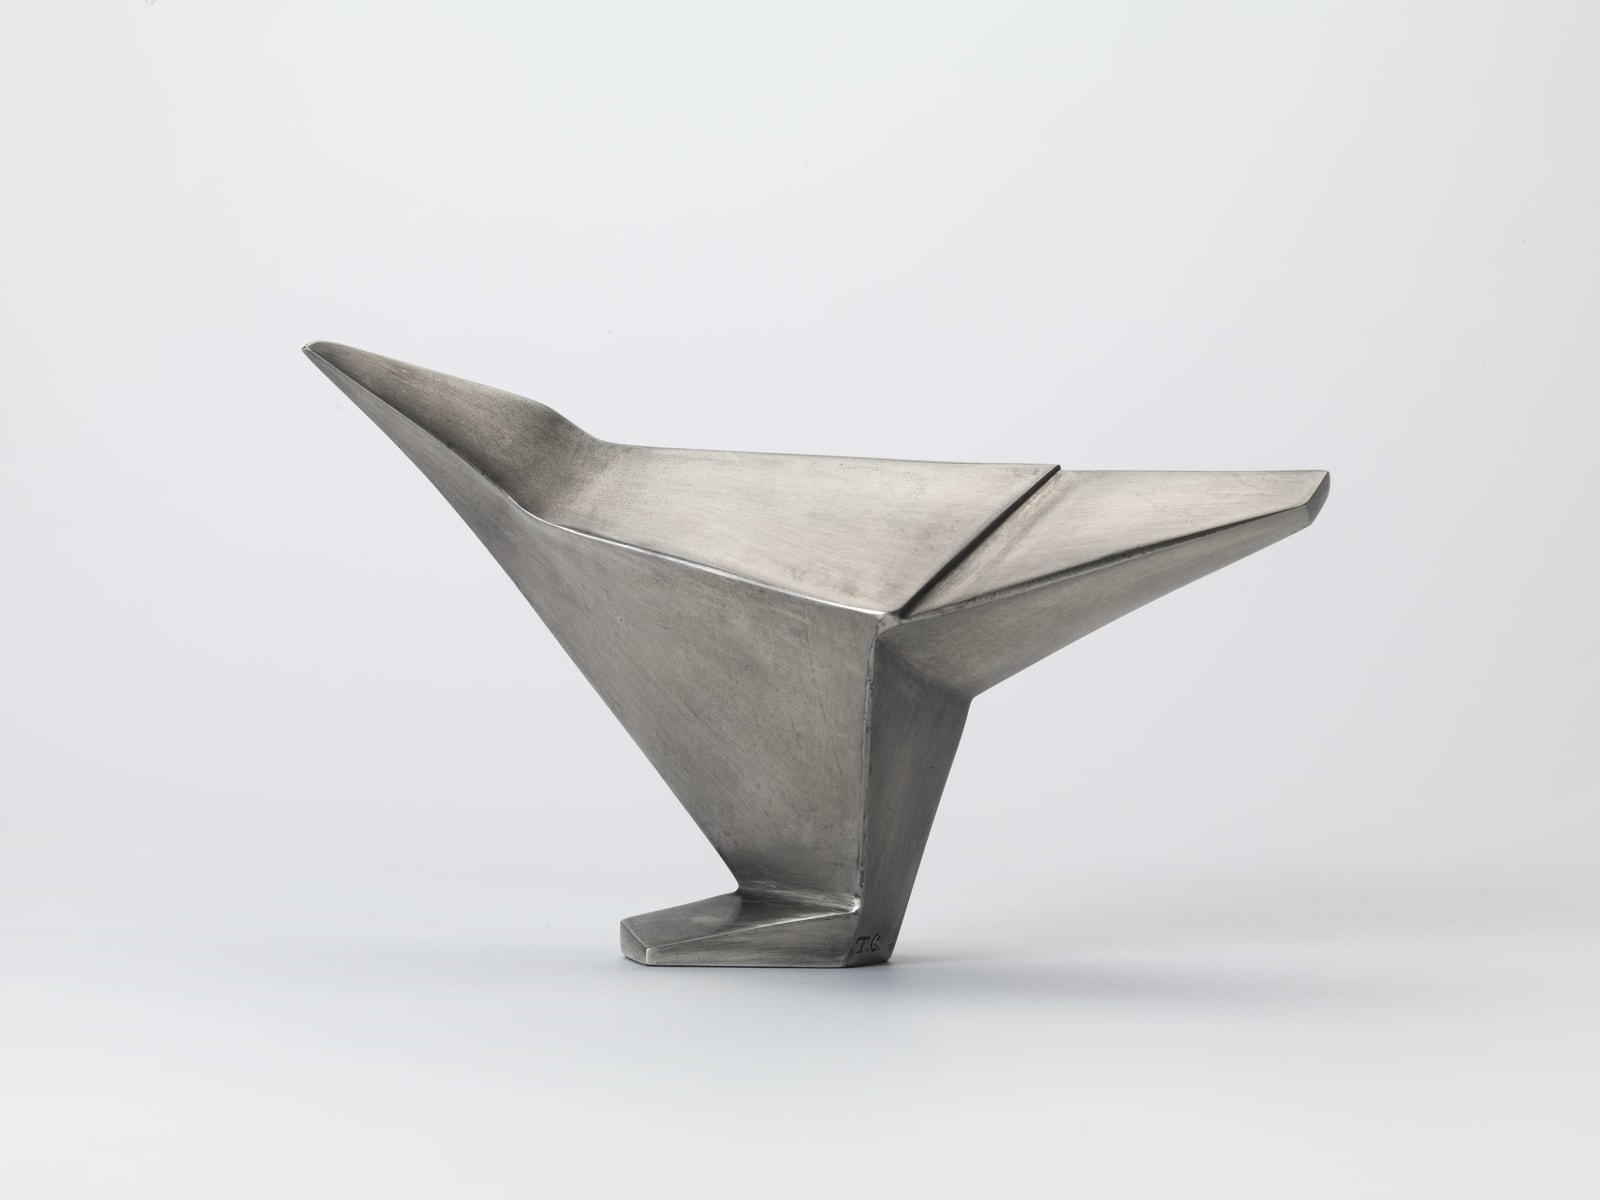 Terence Coventry, Silver Avian Form I, 2014